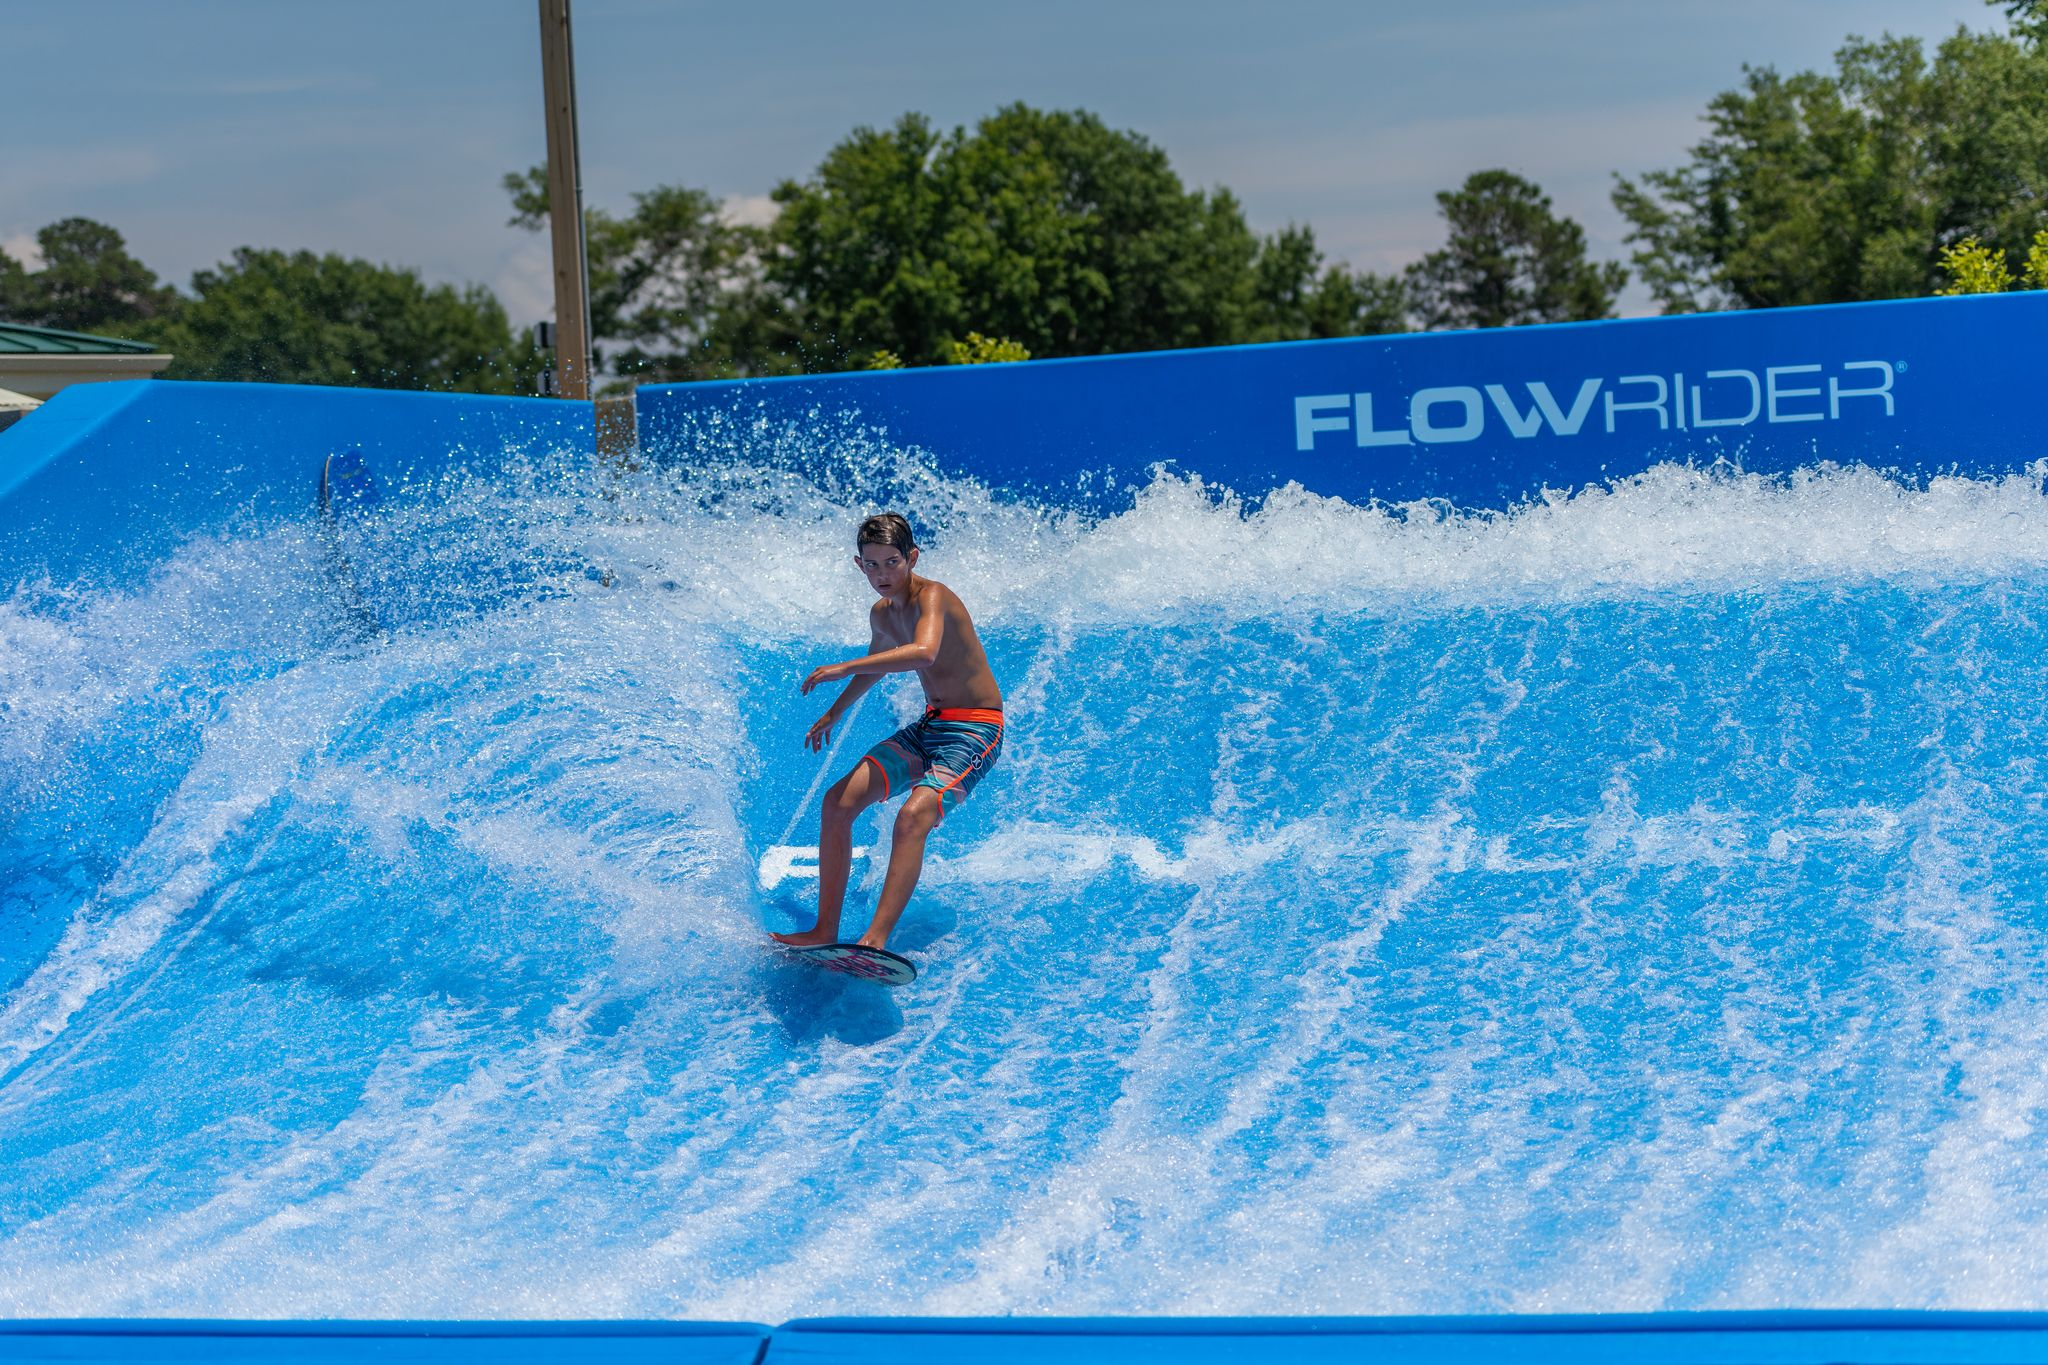 Young girl boogie boarding on the Flow Rider.